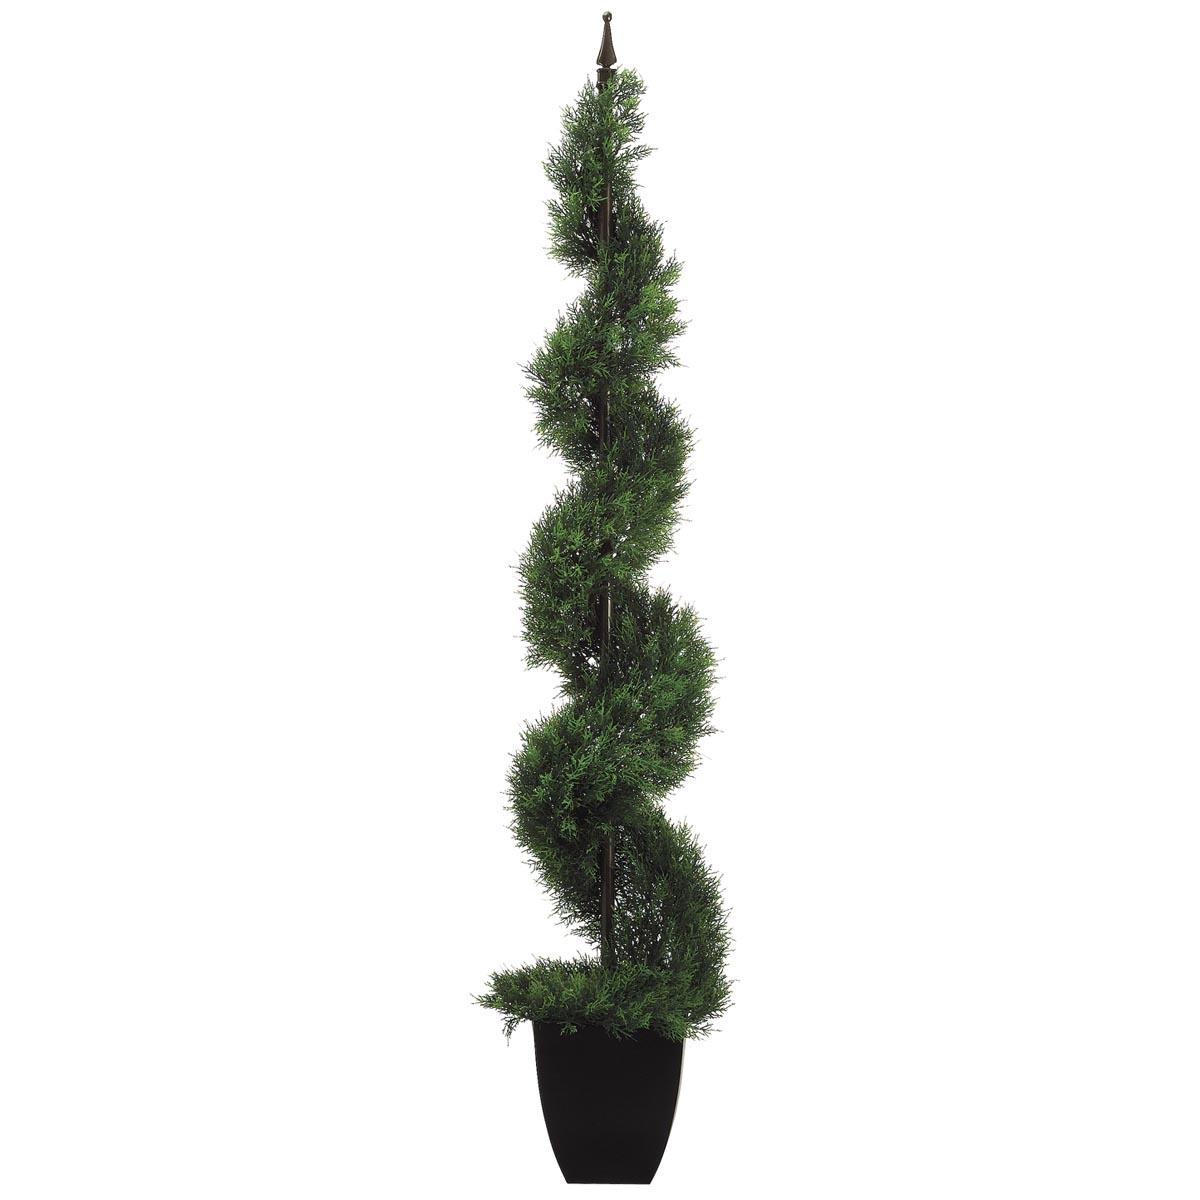 4 Foot Cedar Spiral Topiary With Finial In Black Plastic Pot